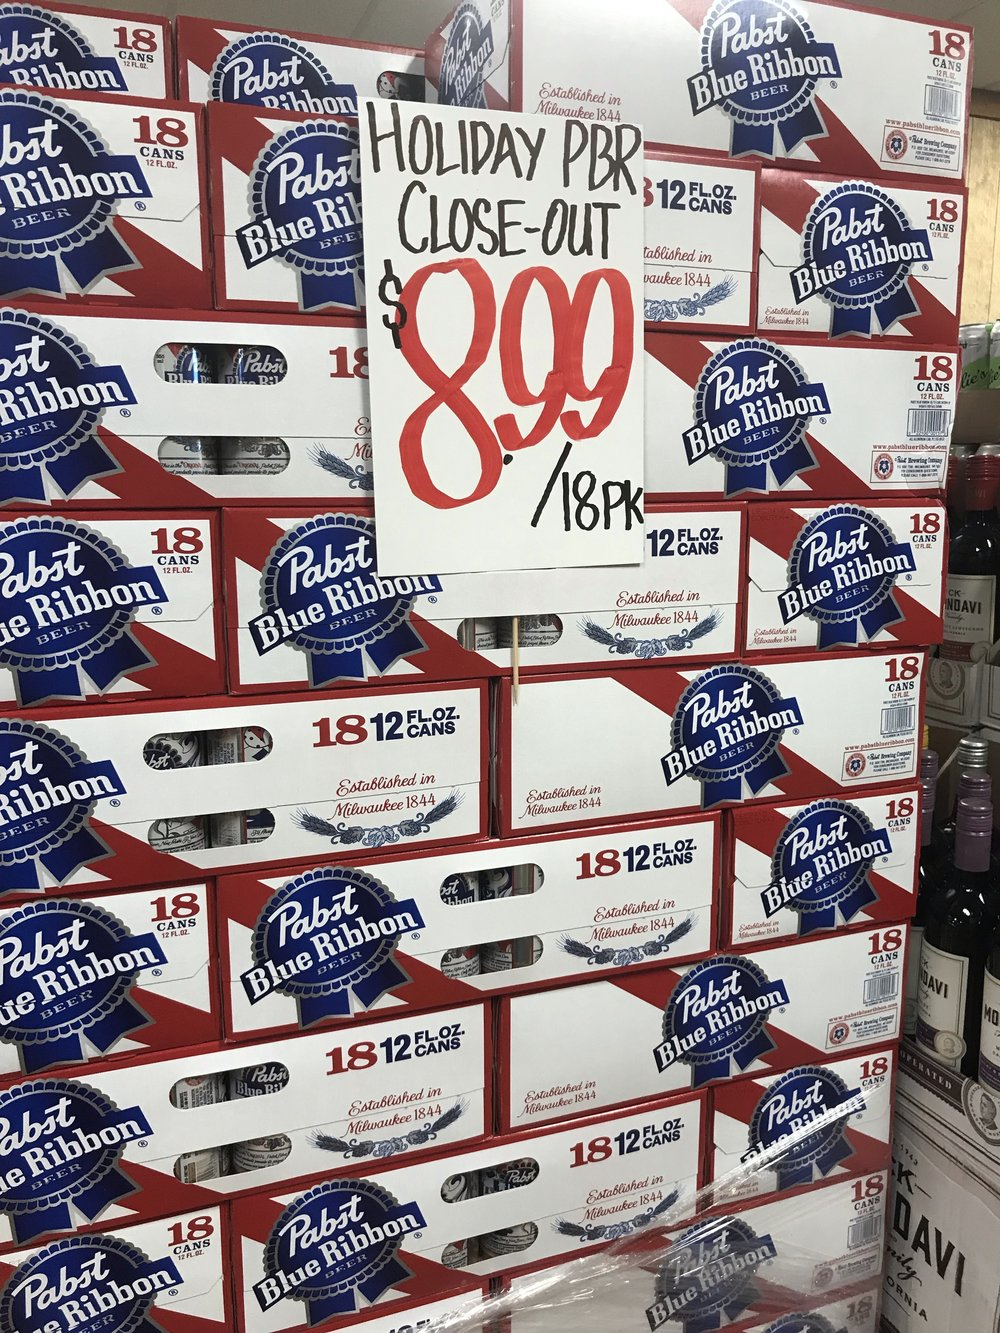 pabst blue ribbon 8.99 18pk.jpg